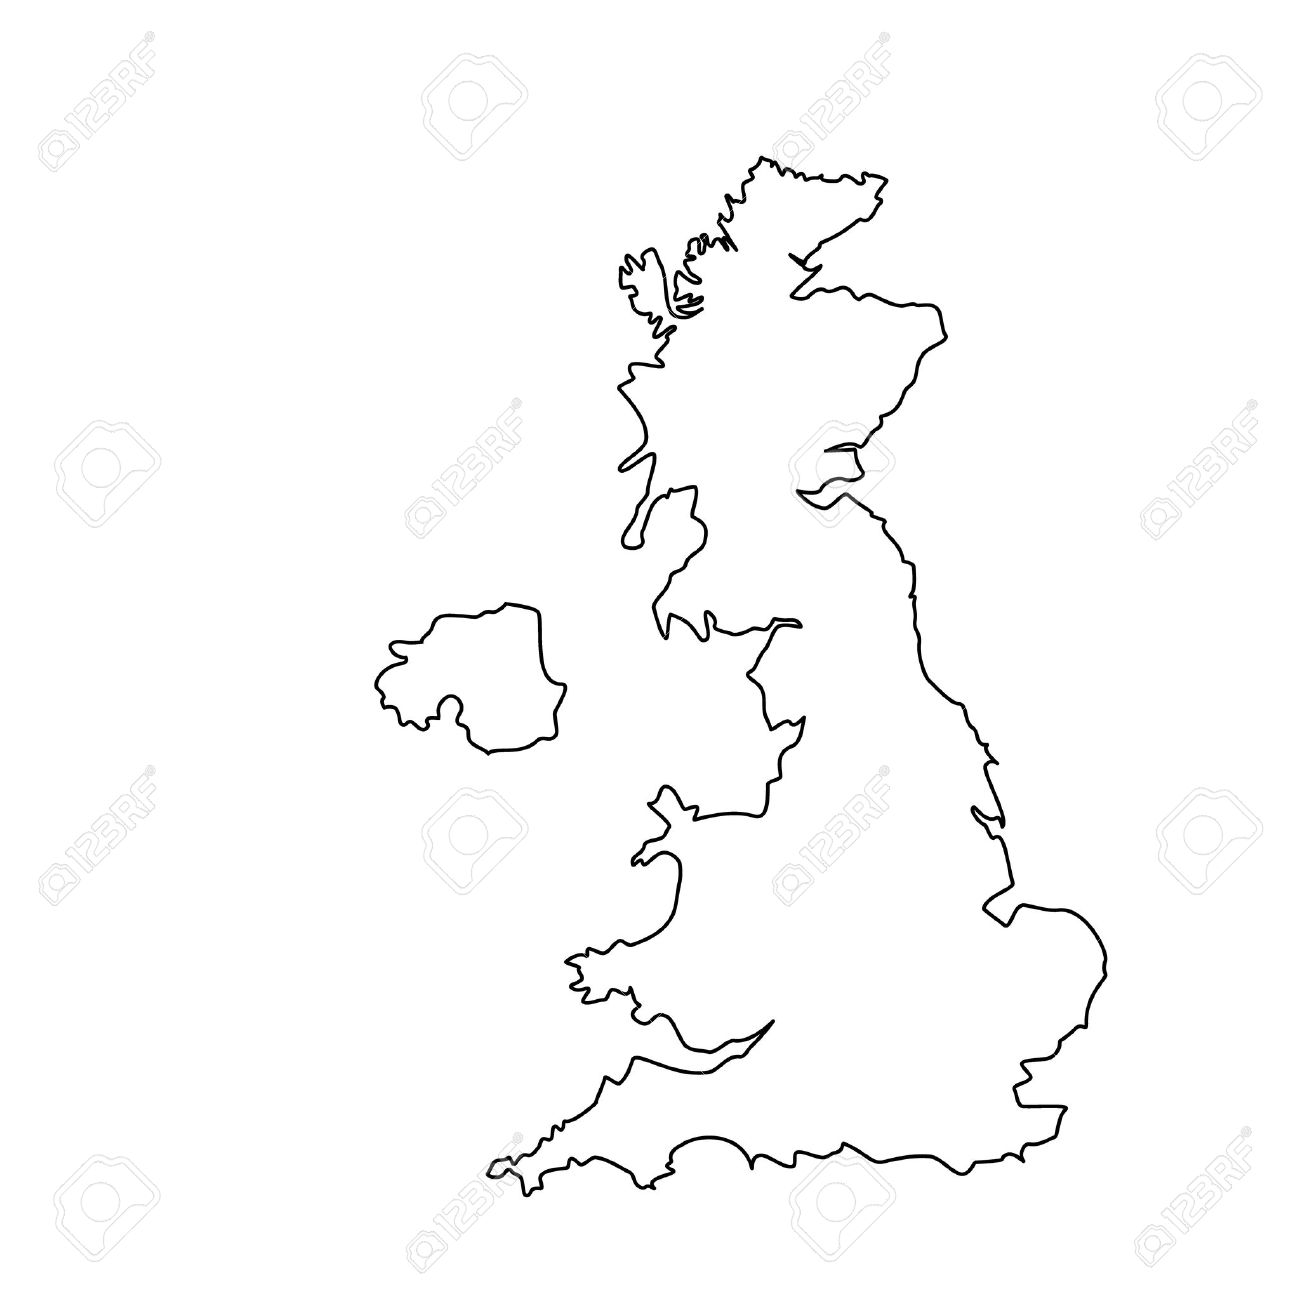 Vector illustration uk map outline drawing. England map line.. on map legend, map that you can draw on, map isometric world, map science projects, map cartoon, map of and or, map quilt, map card, map activity for students, map key, map collage, map artist, map illustration, map watercolor, map of home, map symbols, map scale, map icon location, map photography, map of an imaginary island,